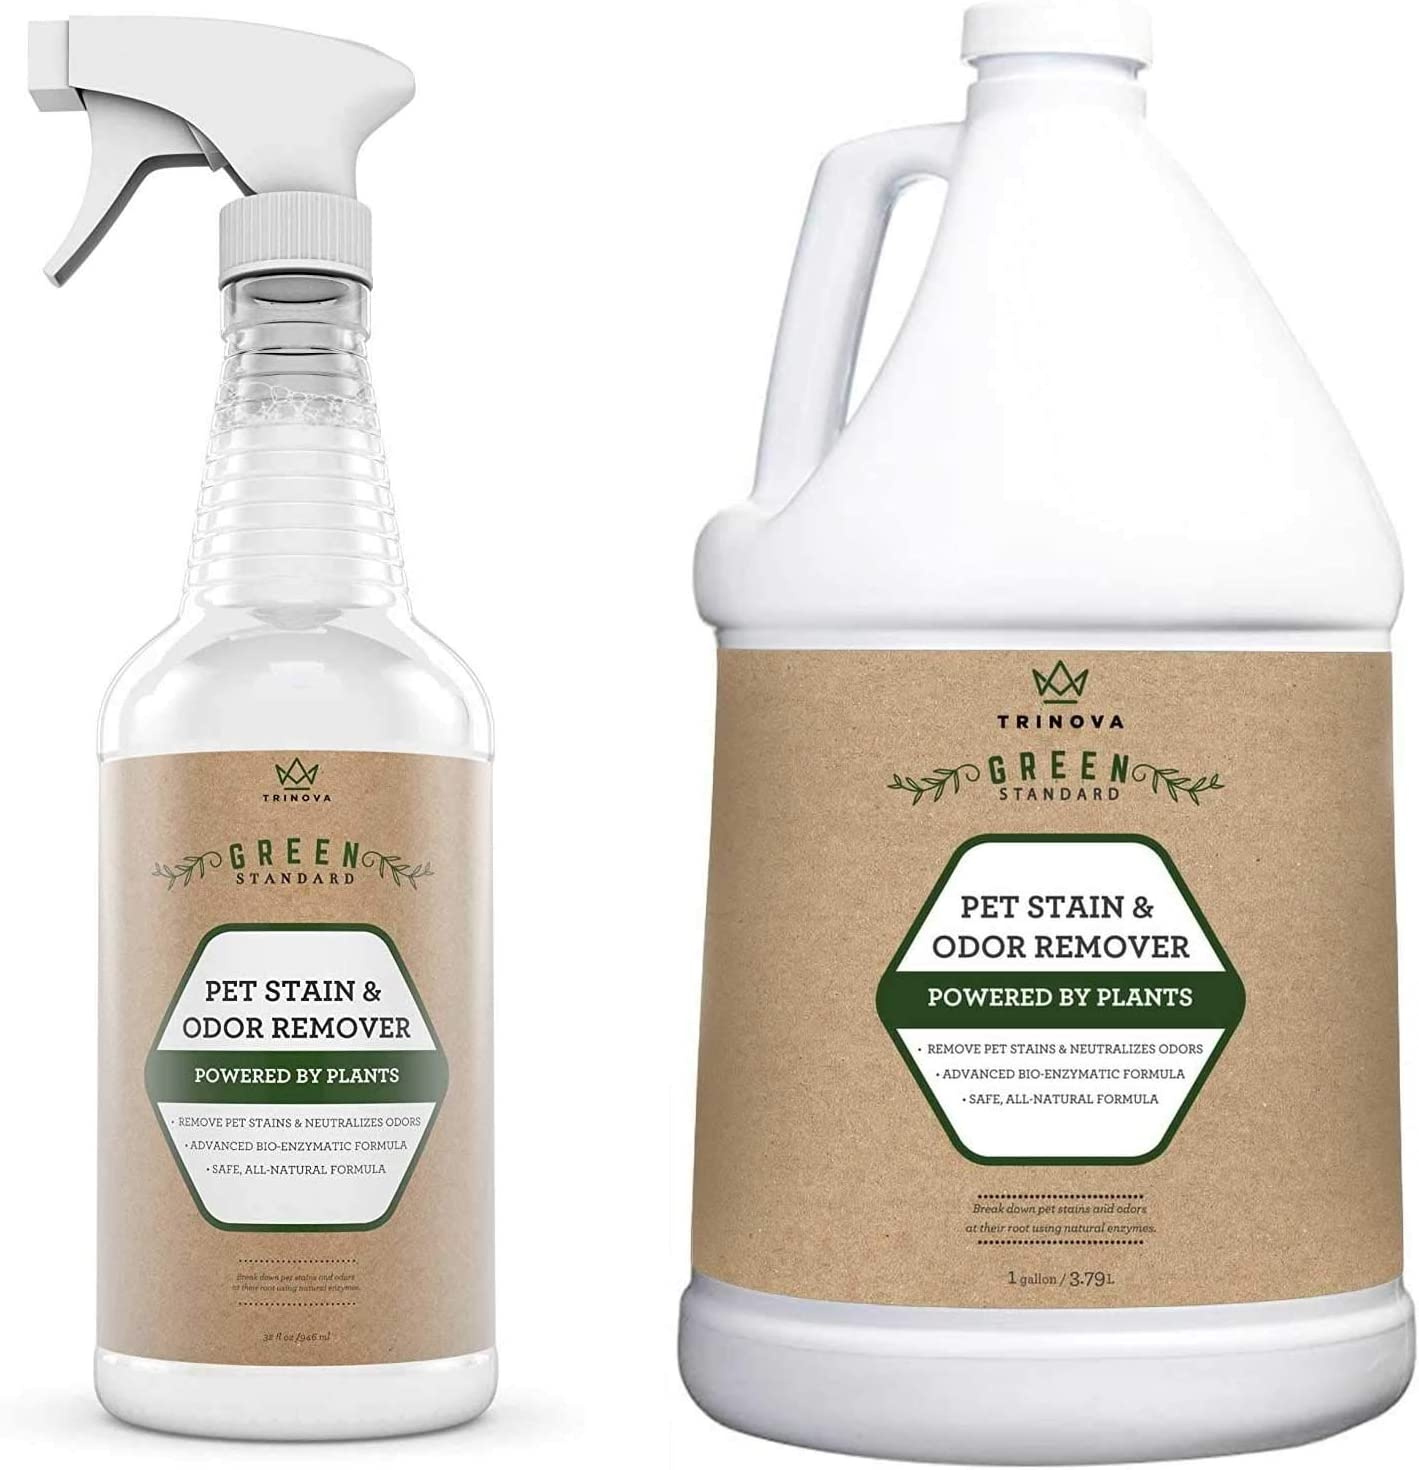 TriNova Natural Pet Stain & Odor Remover Eliminator - Advanced Enzyme Cleaner Spray - 32 oz and Gallon Refill Bundle